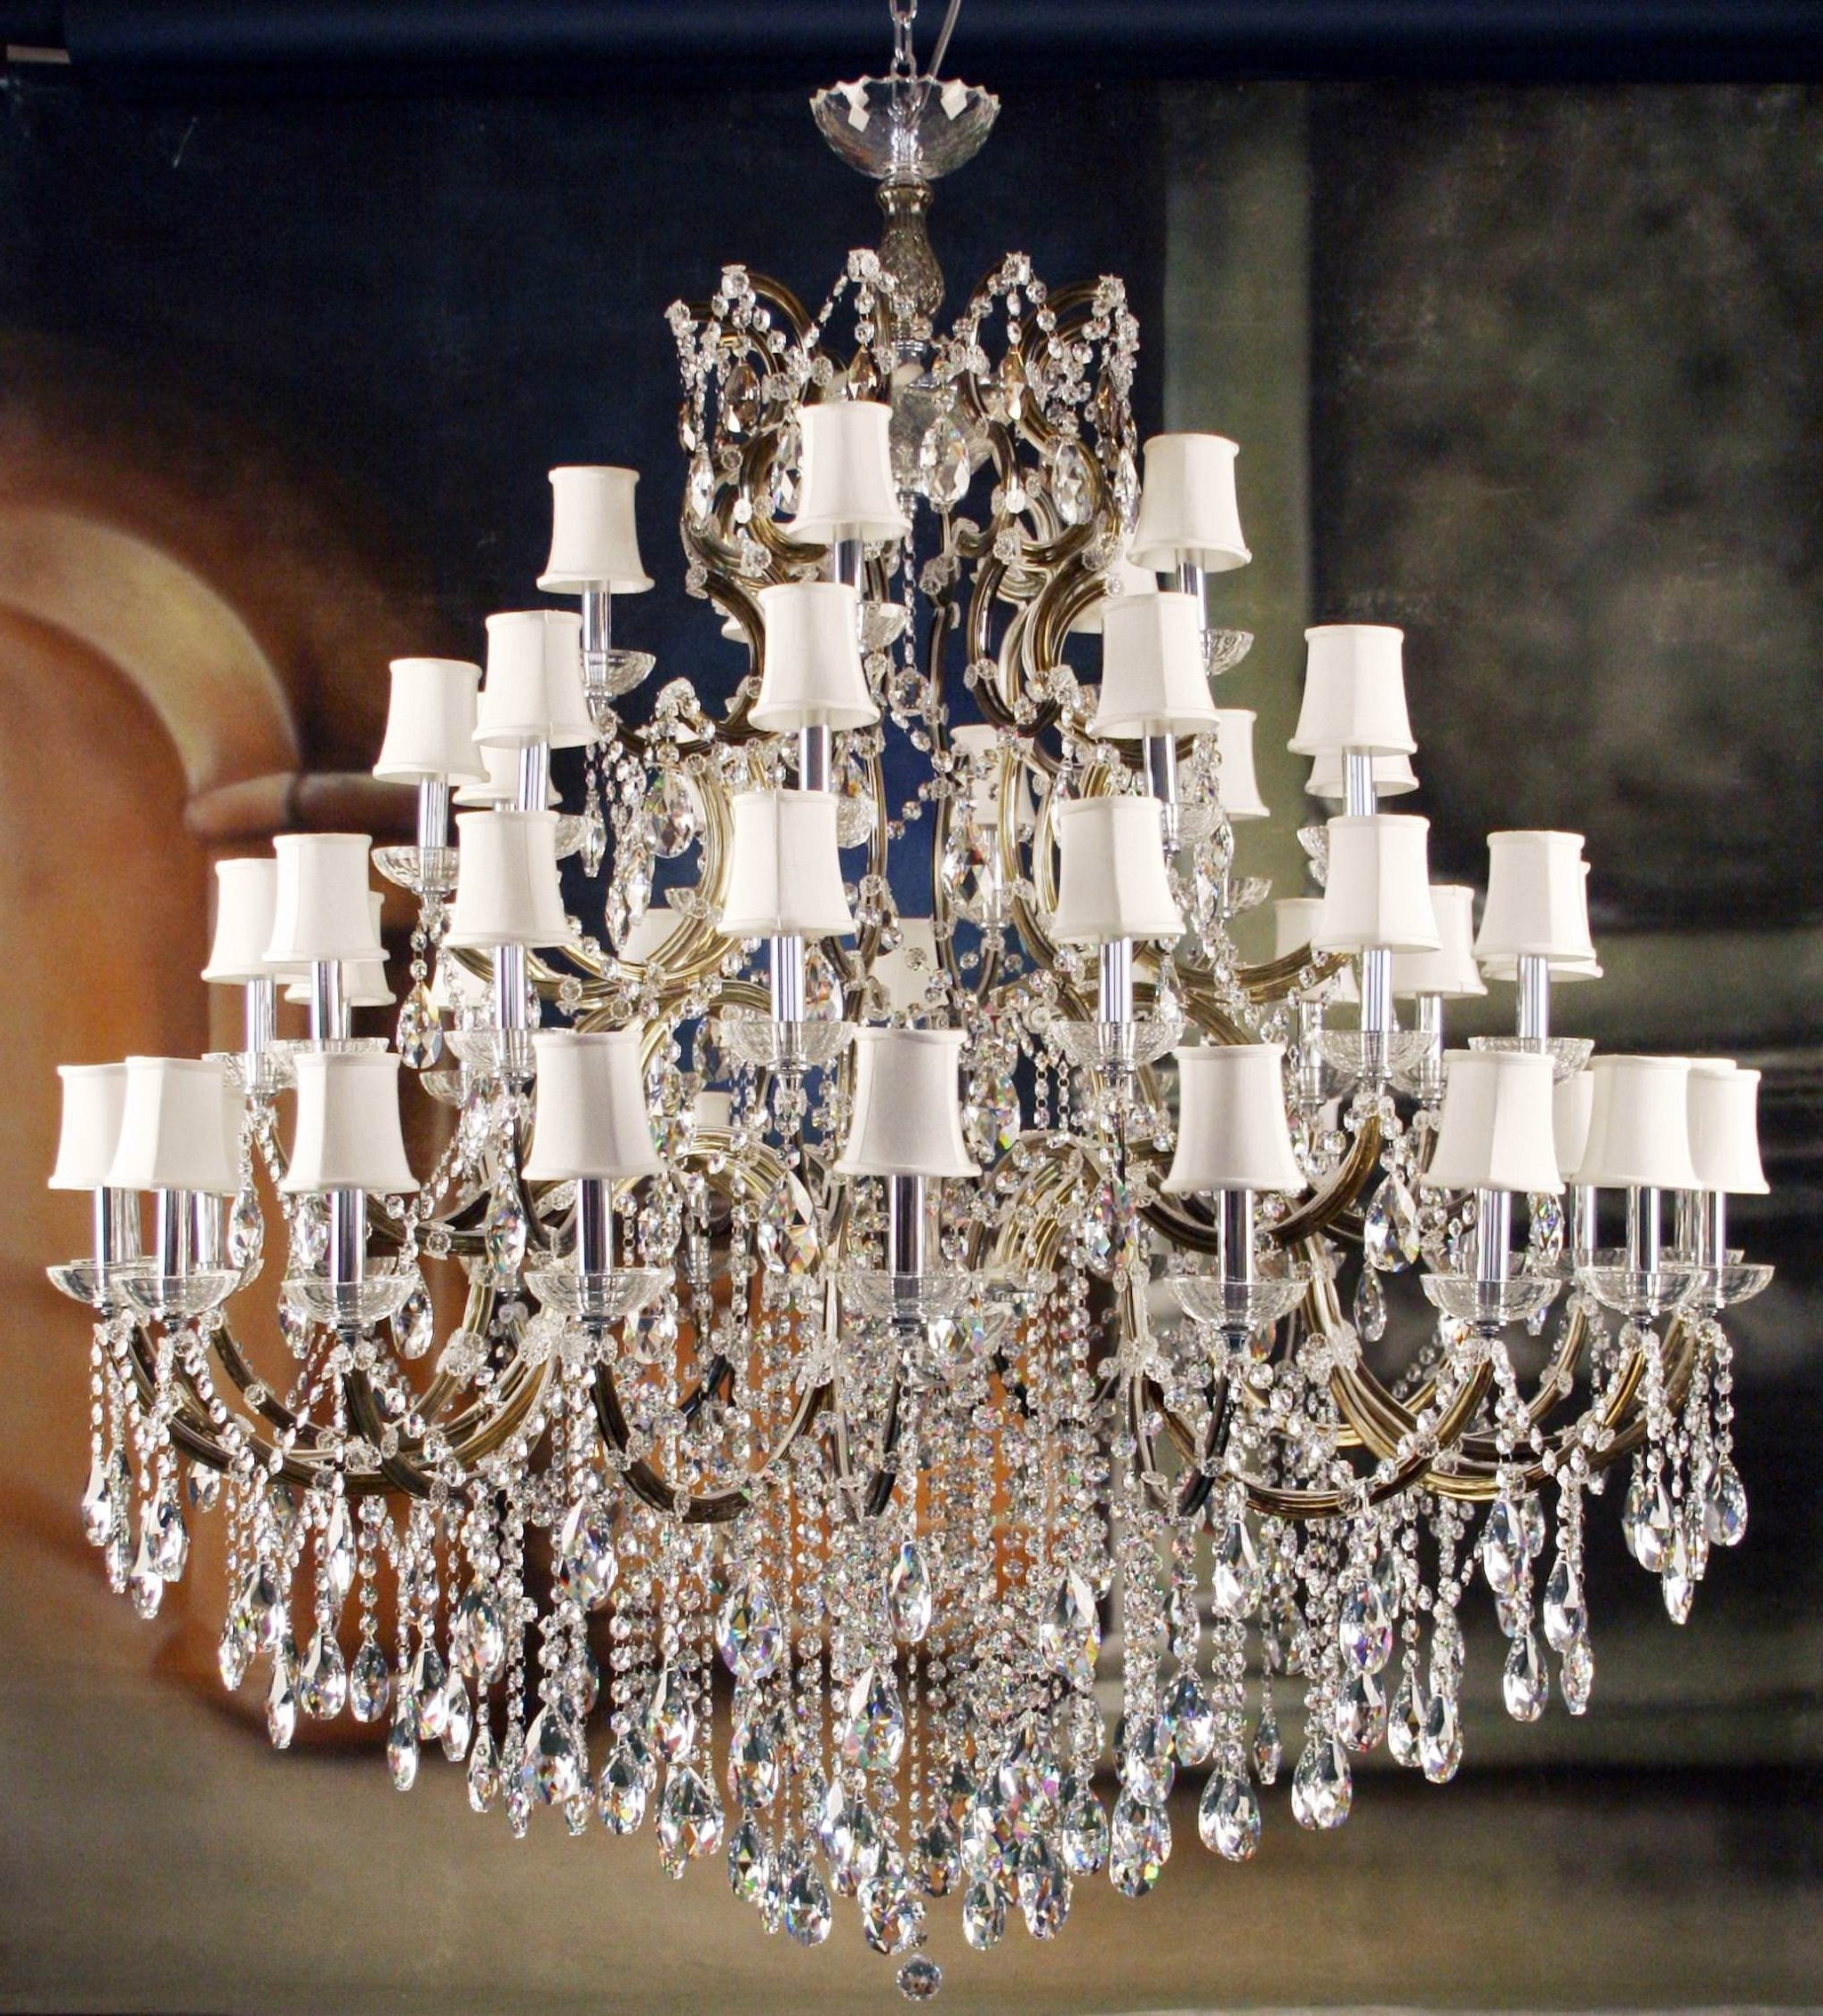 Famous Light : Chandelier Store Kichler Vanity Lights For Kids Room In Wall Mounted Bathroom Chandeliers (View 3 of 15)